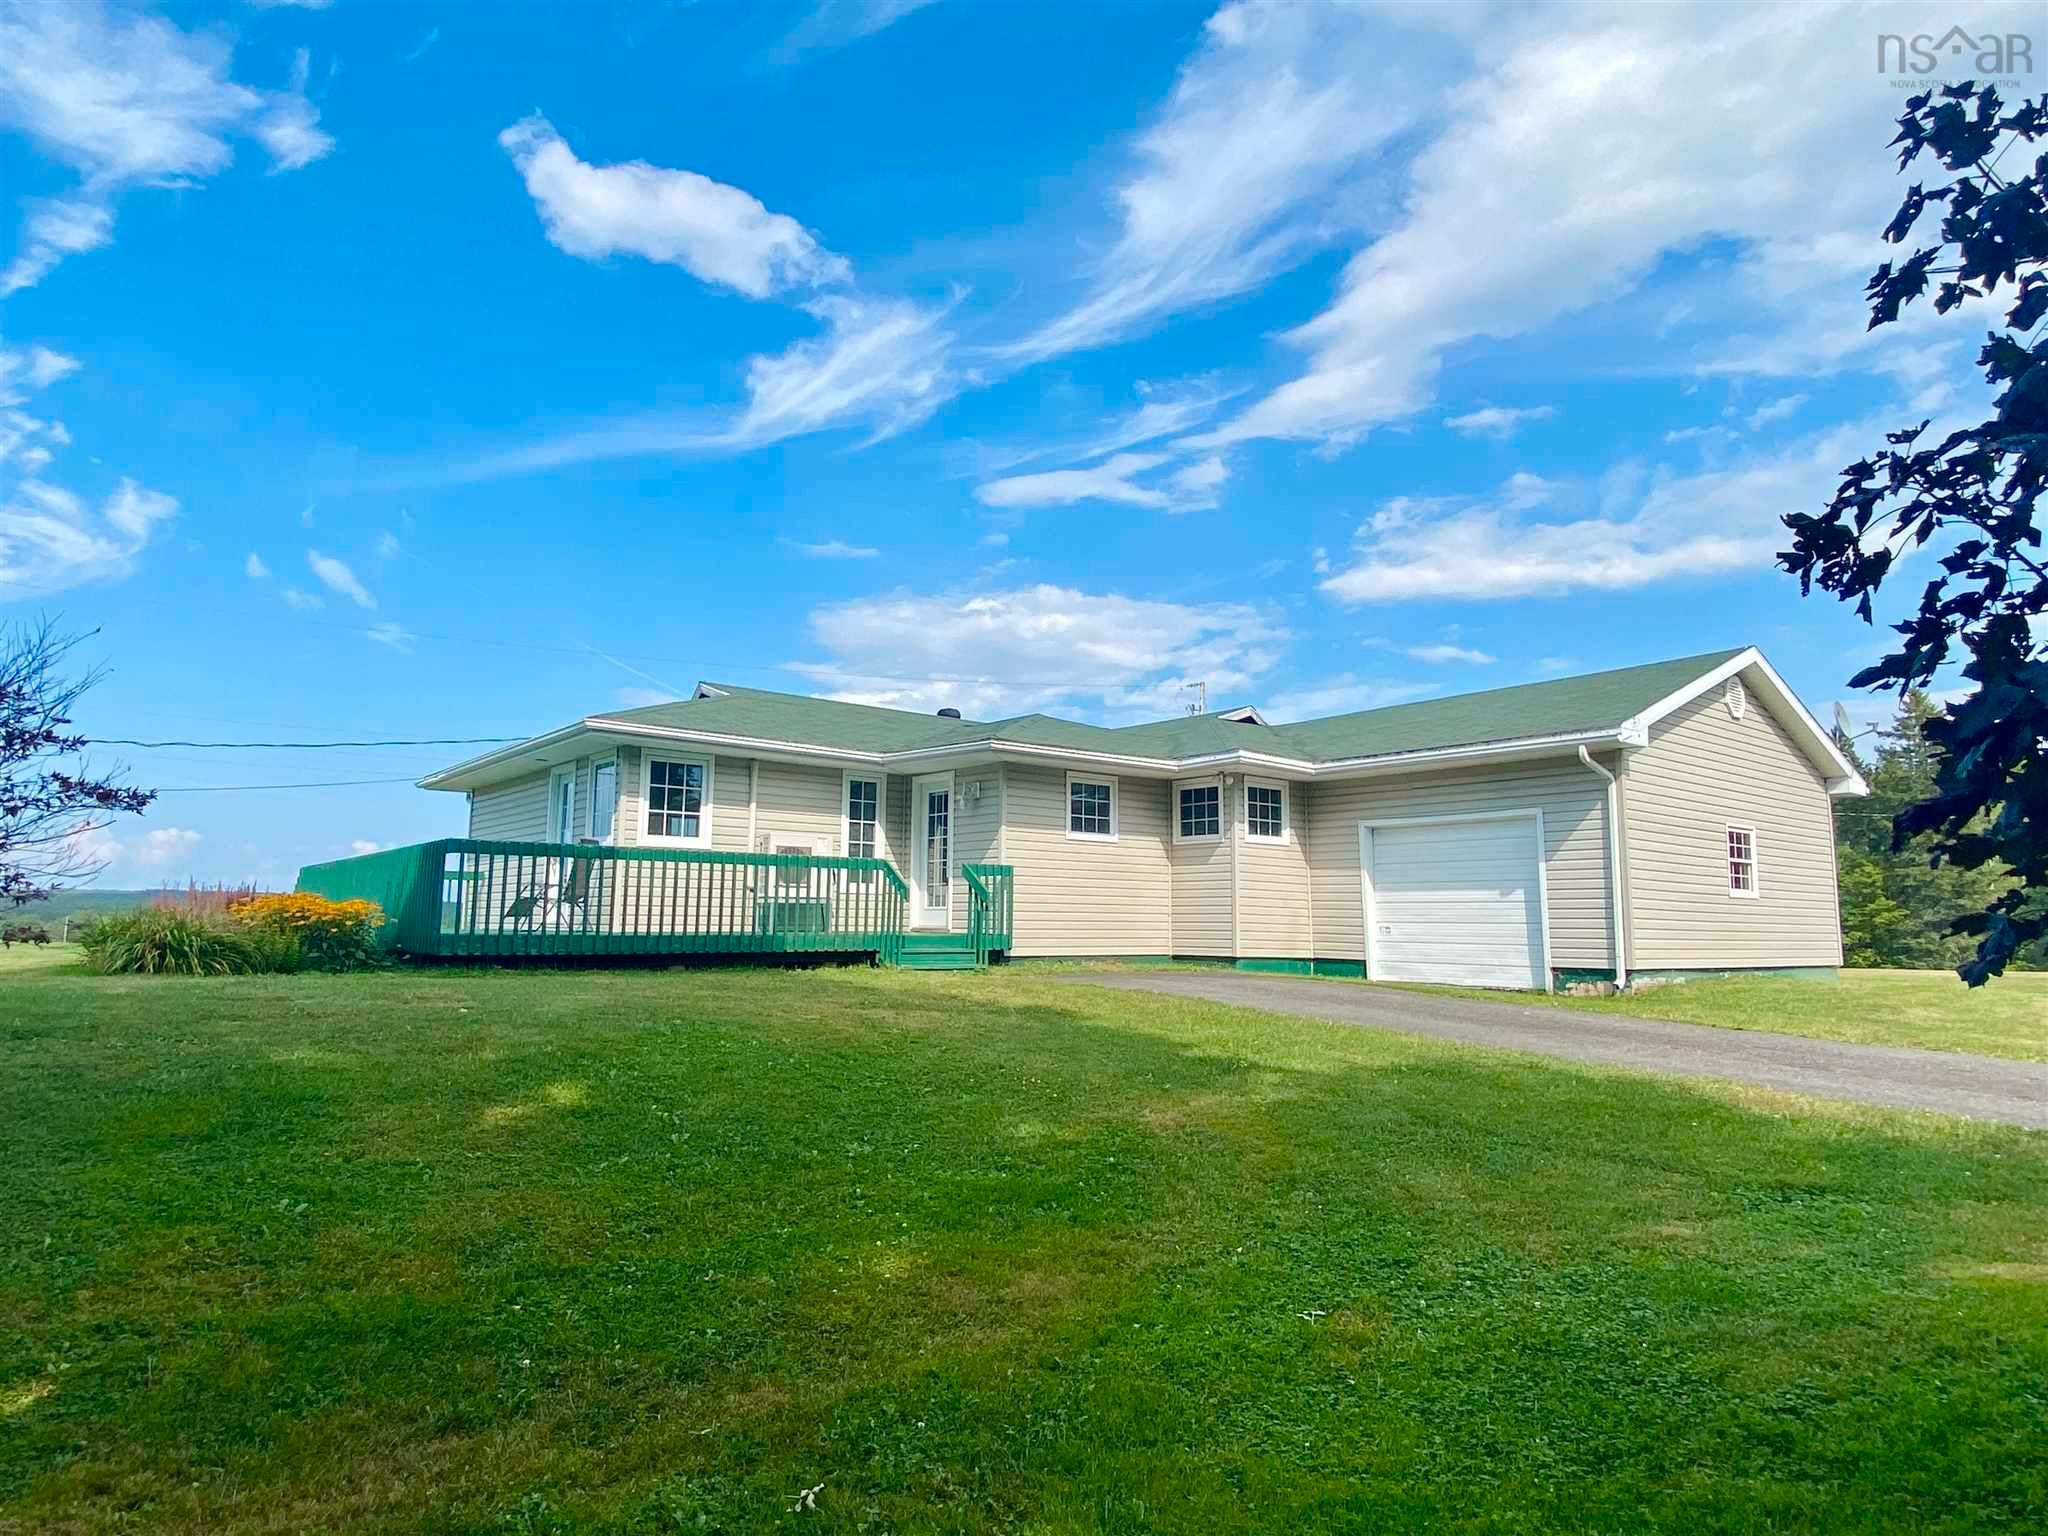 Main Photo: 812 Durham Road in Scotsburn: 108-Rural Pictou County Residential for sale (Northern Region)  : MLS®# 202122165